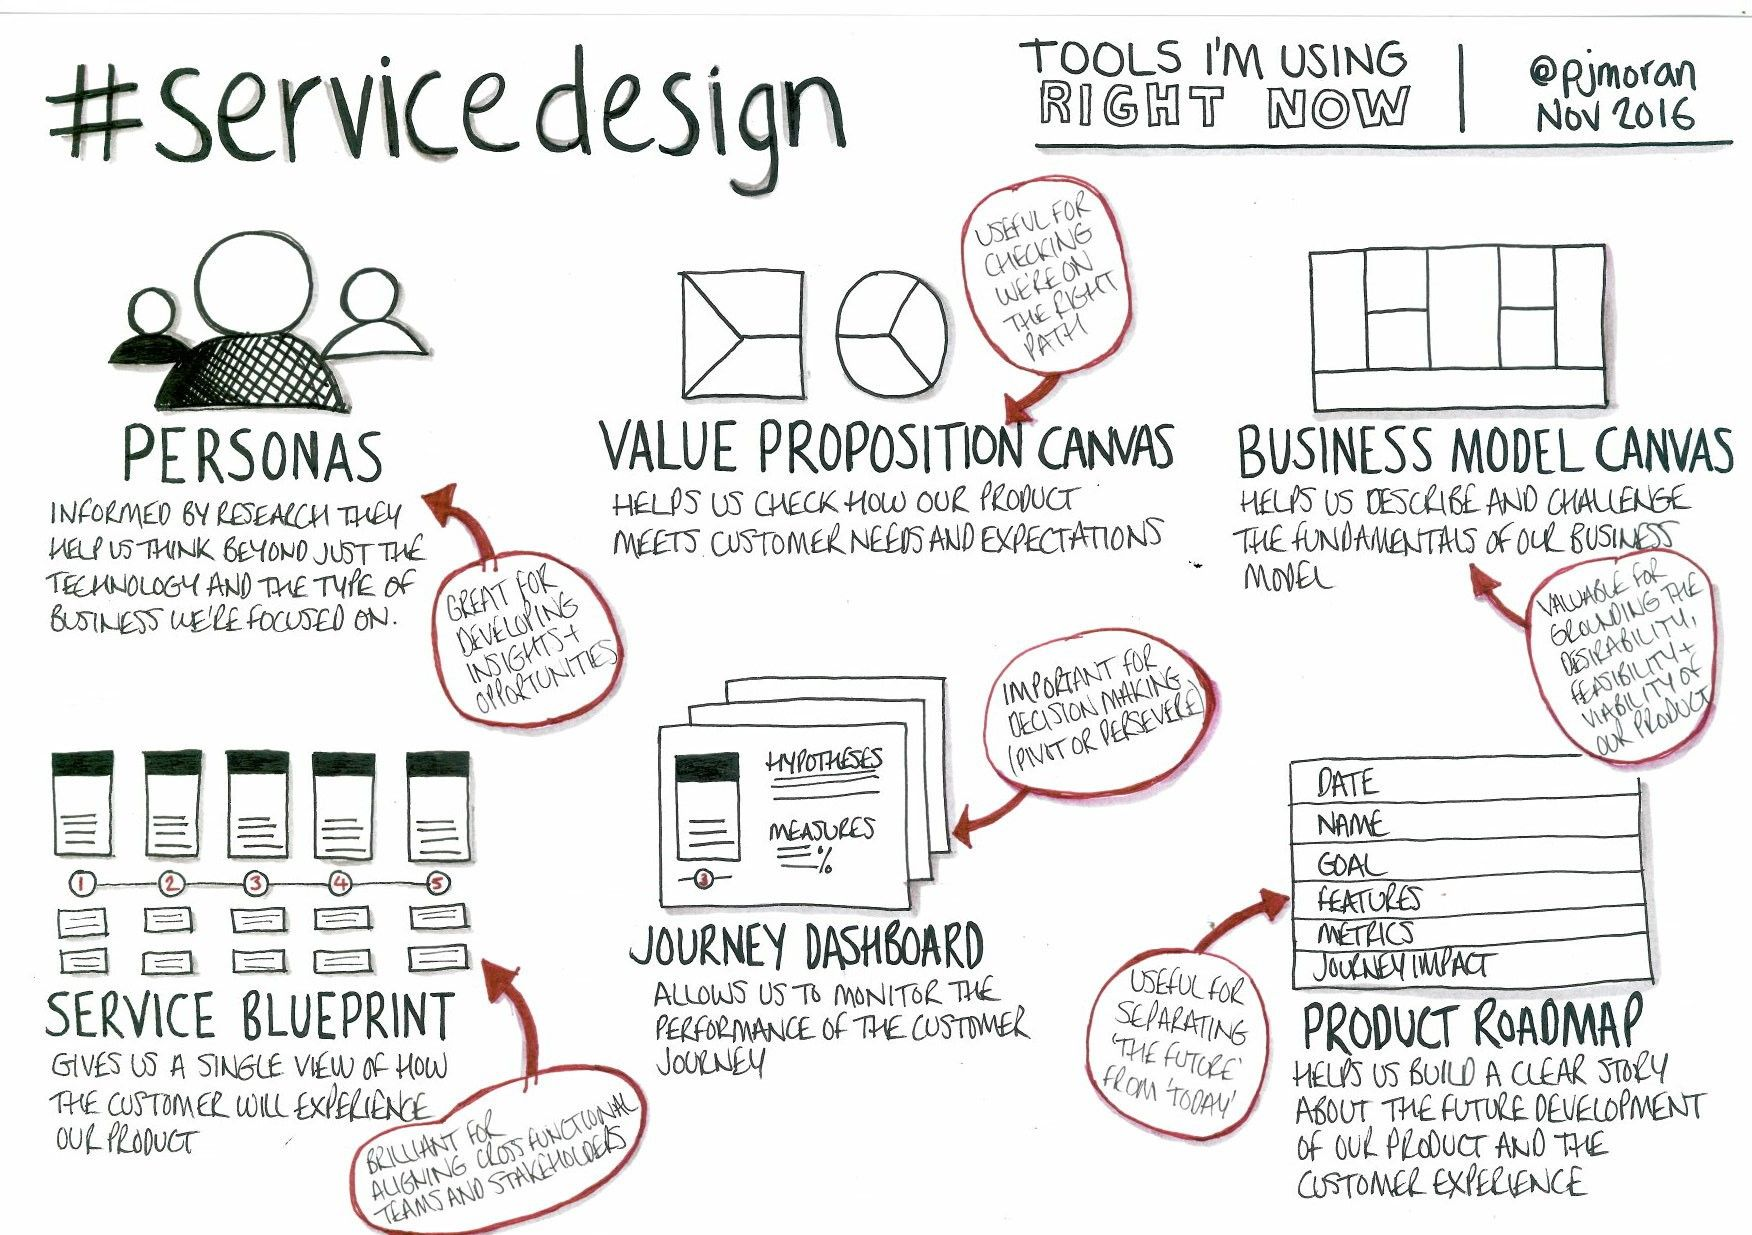 Speed up your team with a service blueprint service design speed up your team with a service blueprint practical service design malvernweather